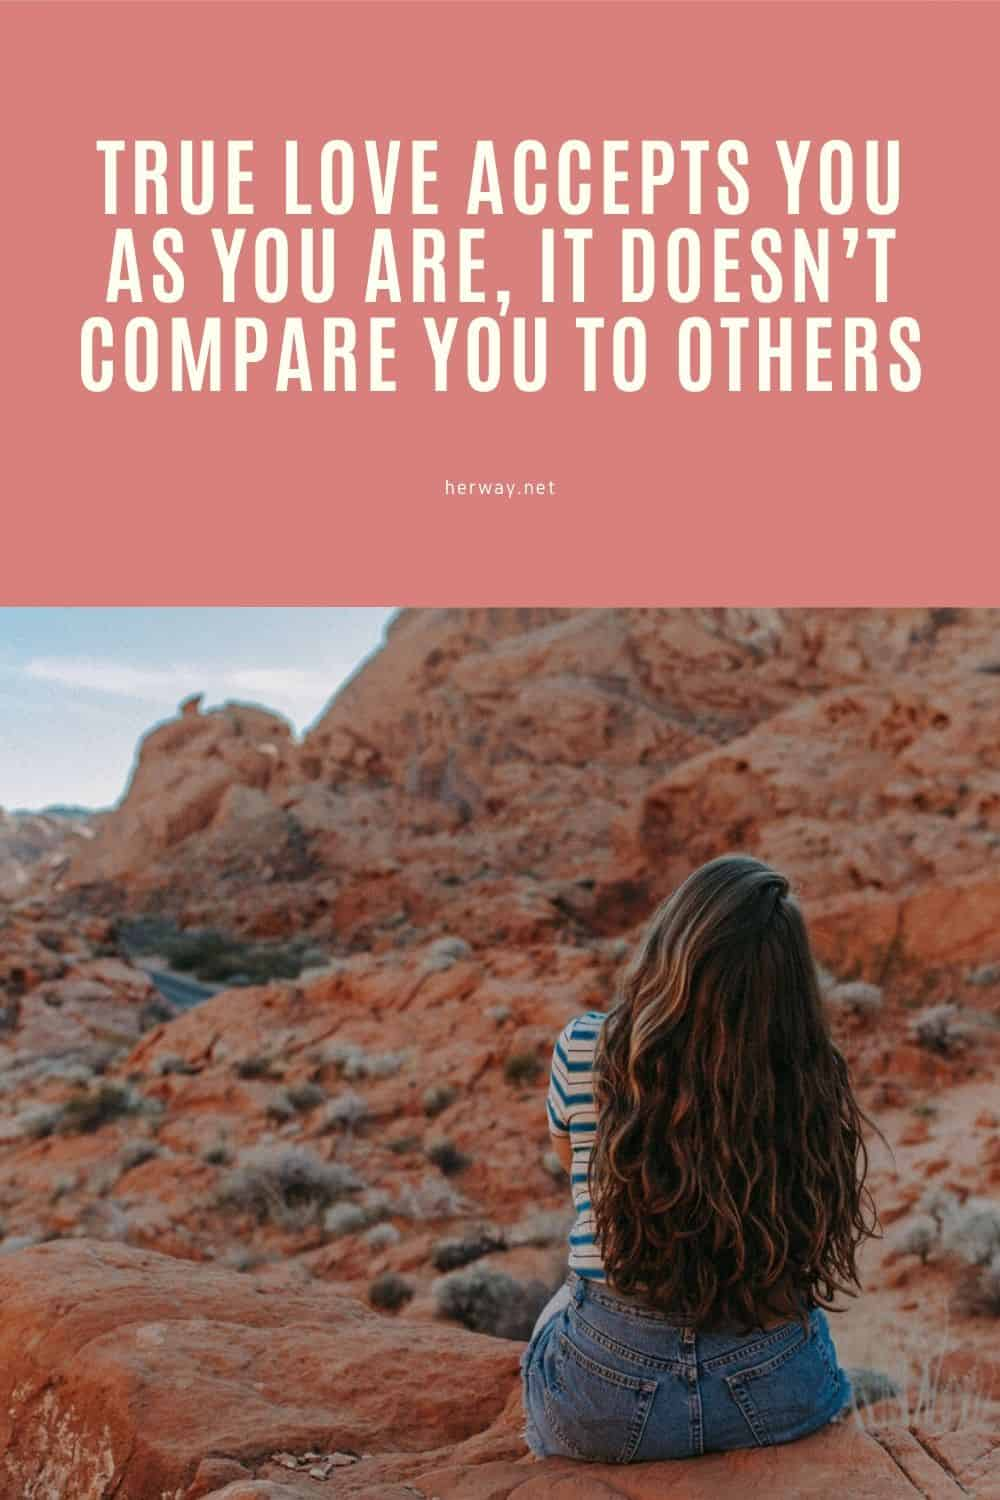 True Love Accepts You As You Are, It Doesn't Compare You To Others